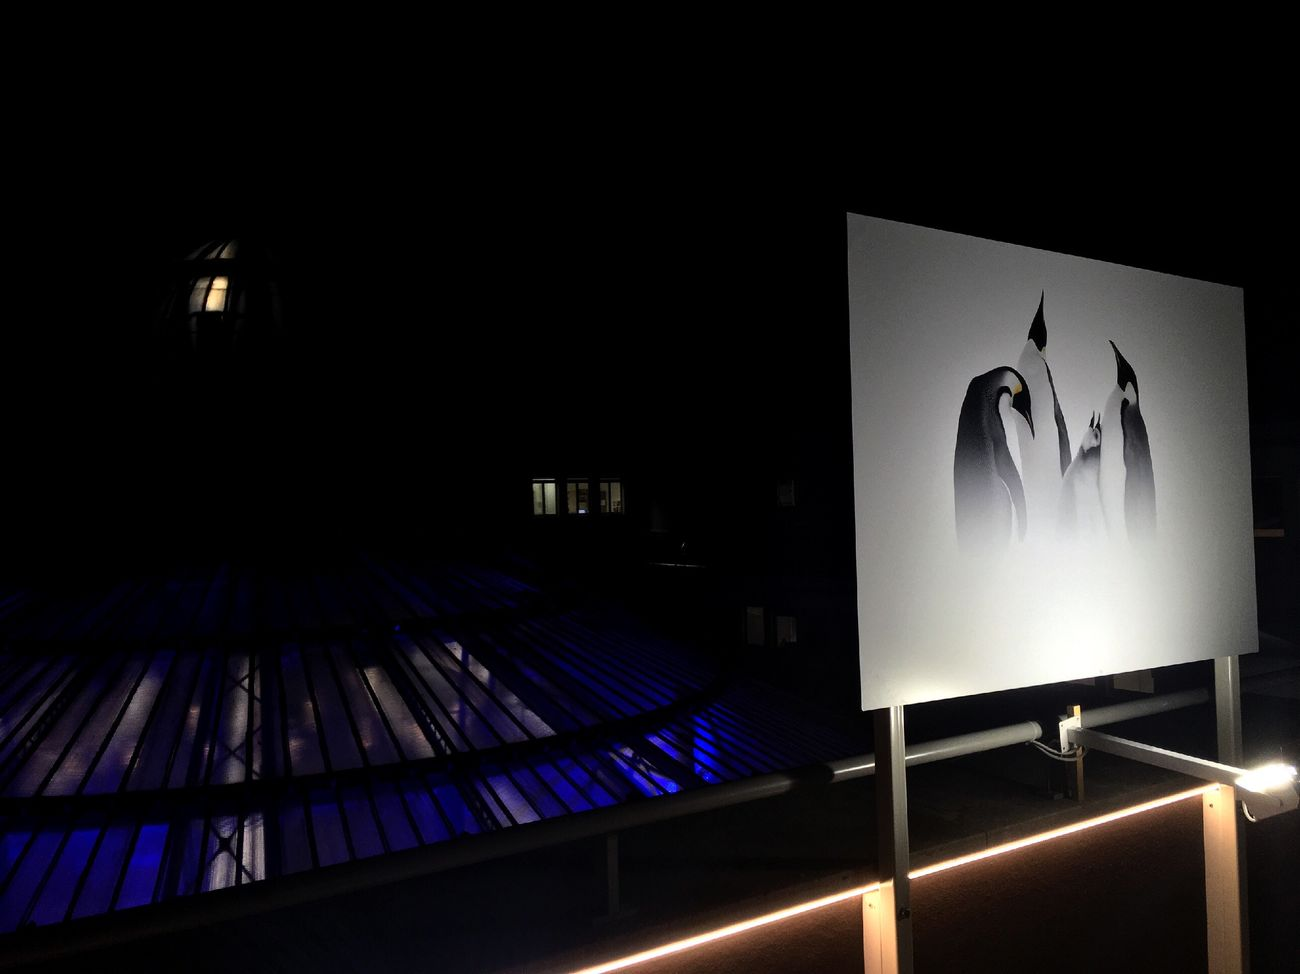 No People Illuminated Indoors  Expo Museum Design Art First Eyeem Photo EyeEm Best Shots Rooftop Blue Painting Likeforlike Architecture Light And Shadow Night Nightphotography White View Perspective Light Outdoors Paris Photography Picoftheday